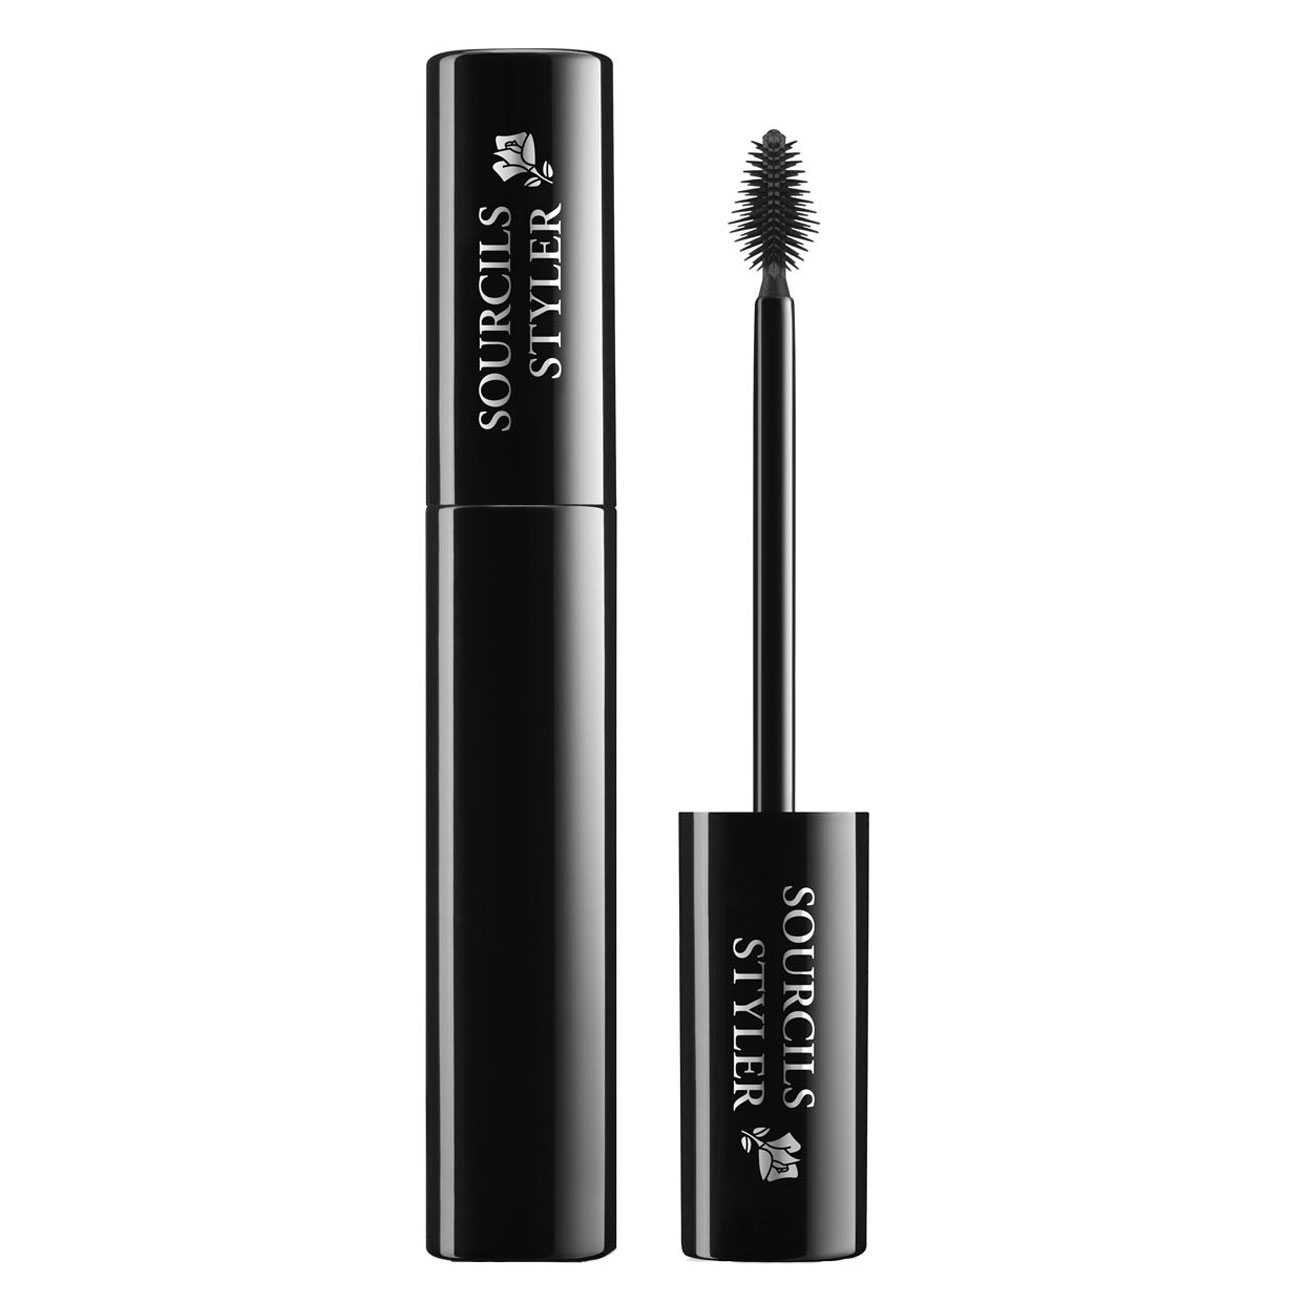 SOURCILS STYLER EYE BROW MASCARA 5 ML Transparent imagine produs